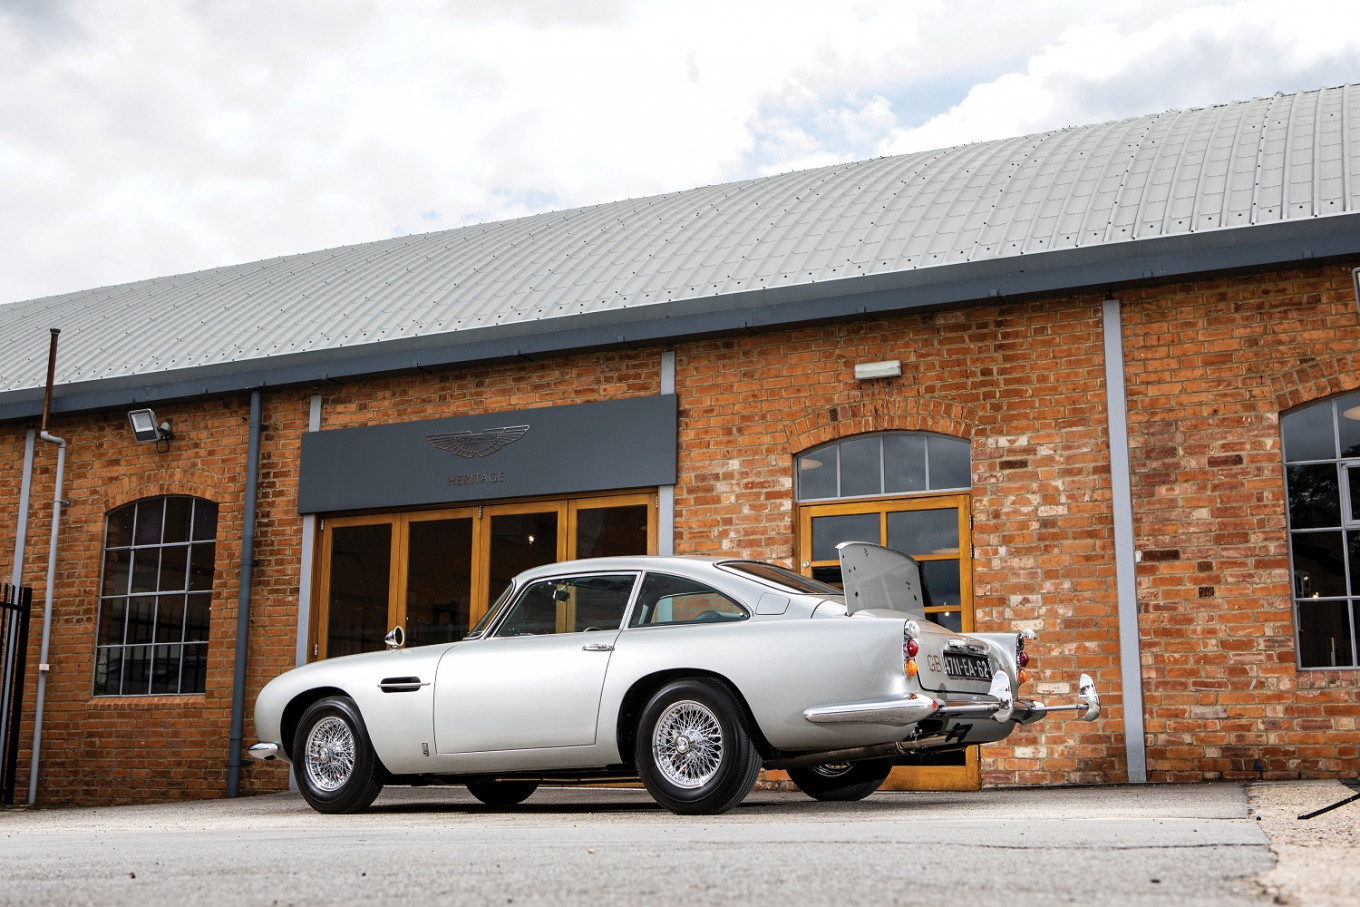 James Bonds Aston Martin is up for auction